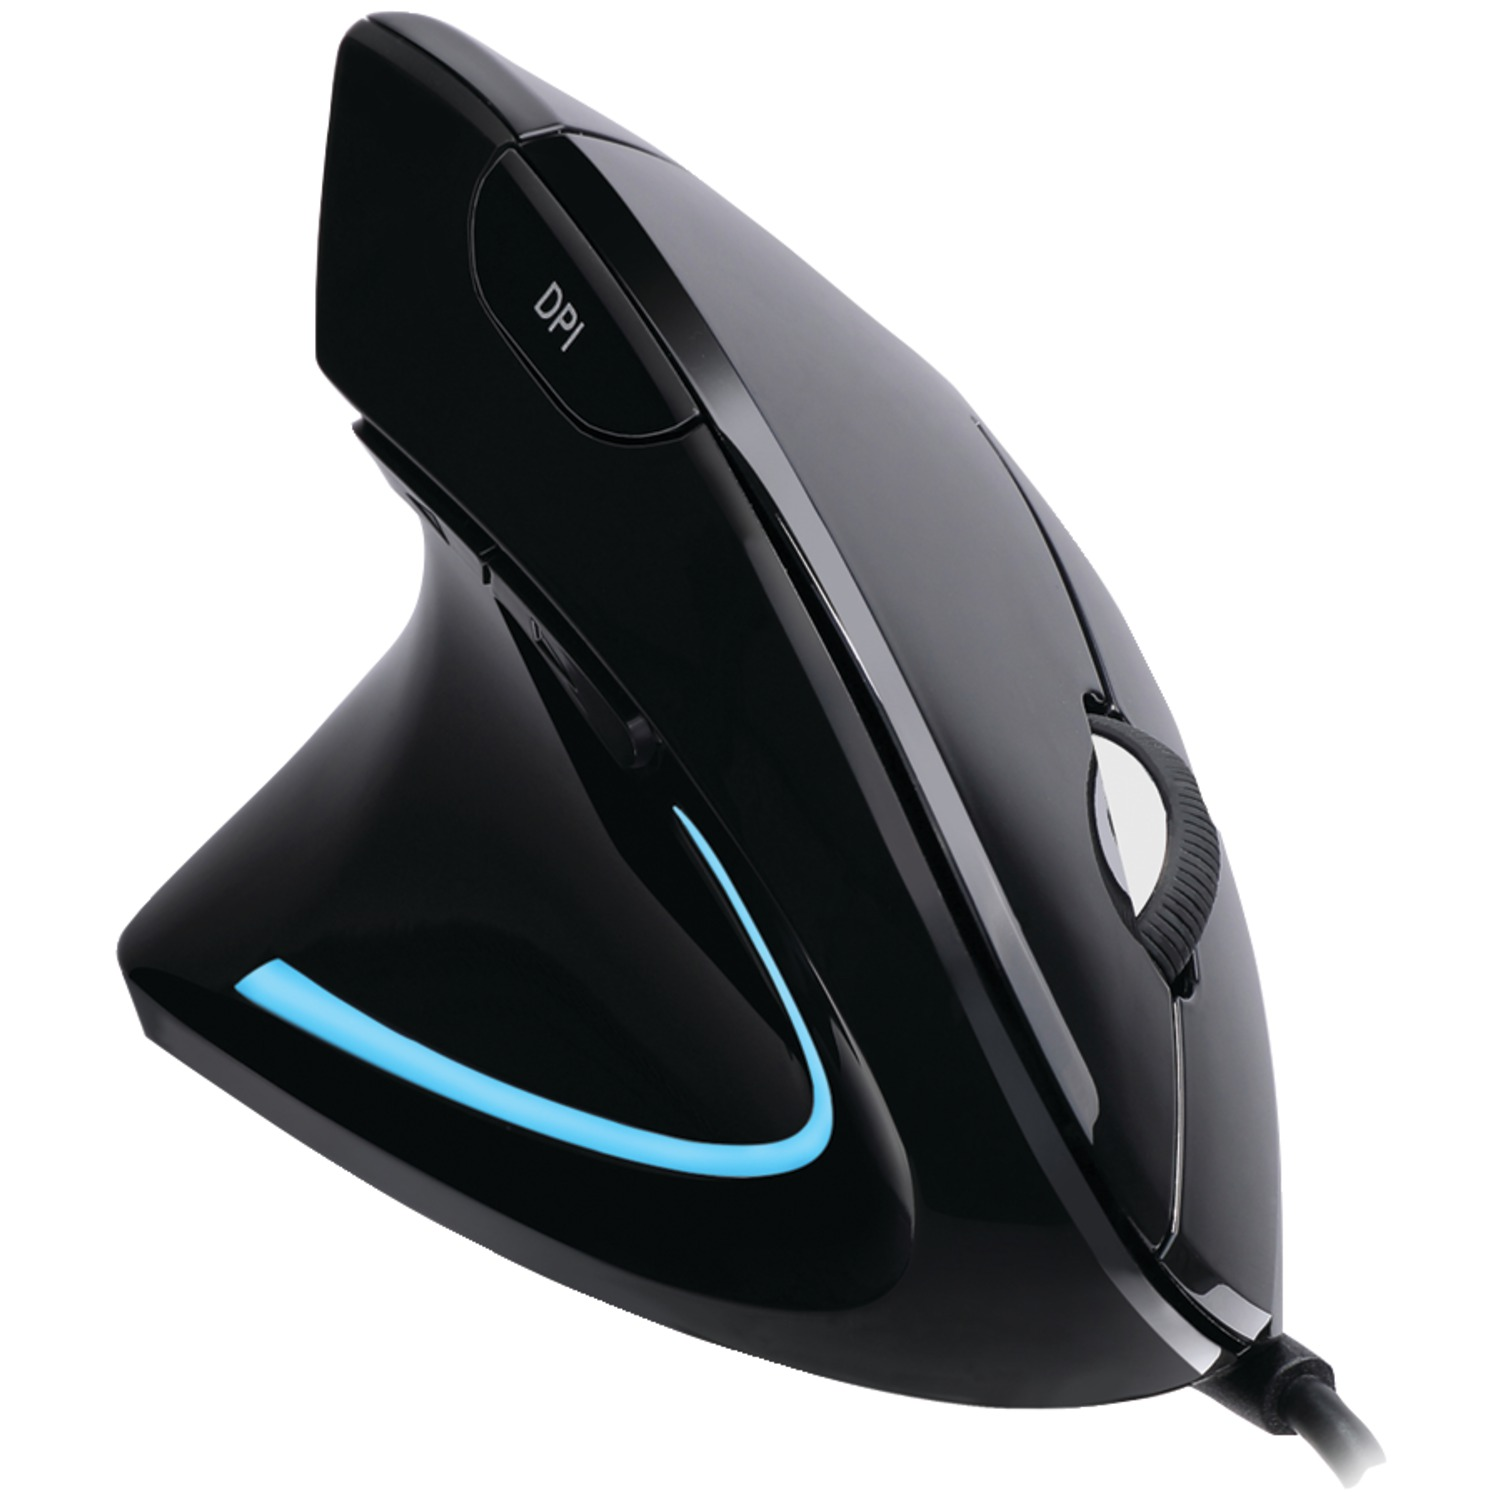 Adesso IMOUSE E9 iMouse E9 Left-Handed Vertical Ergonomic Mouse